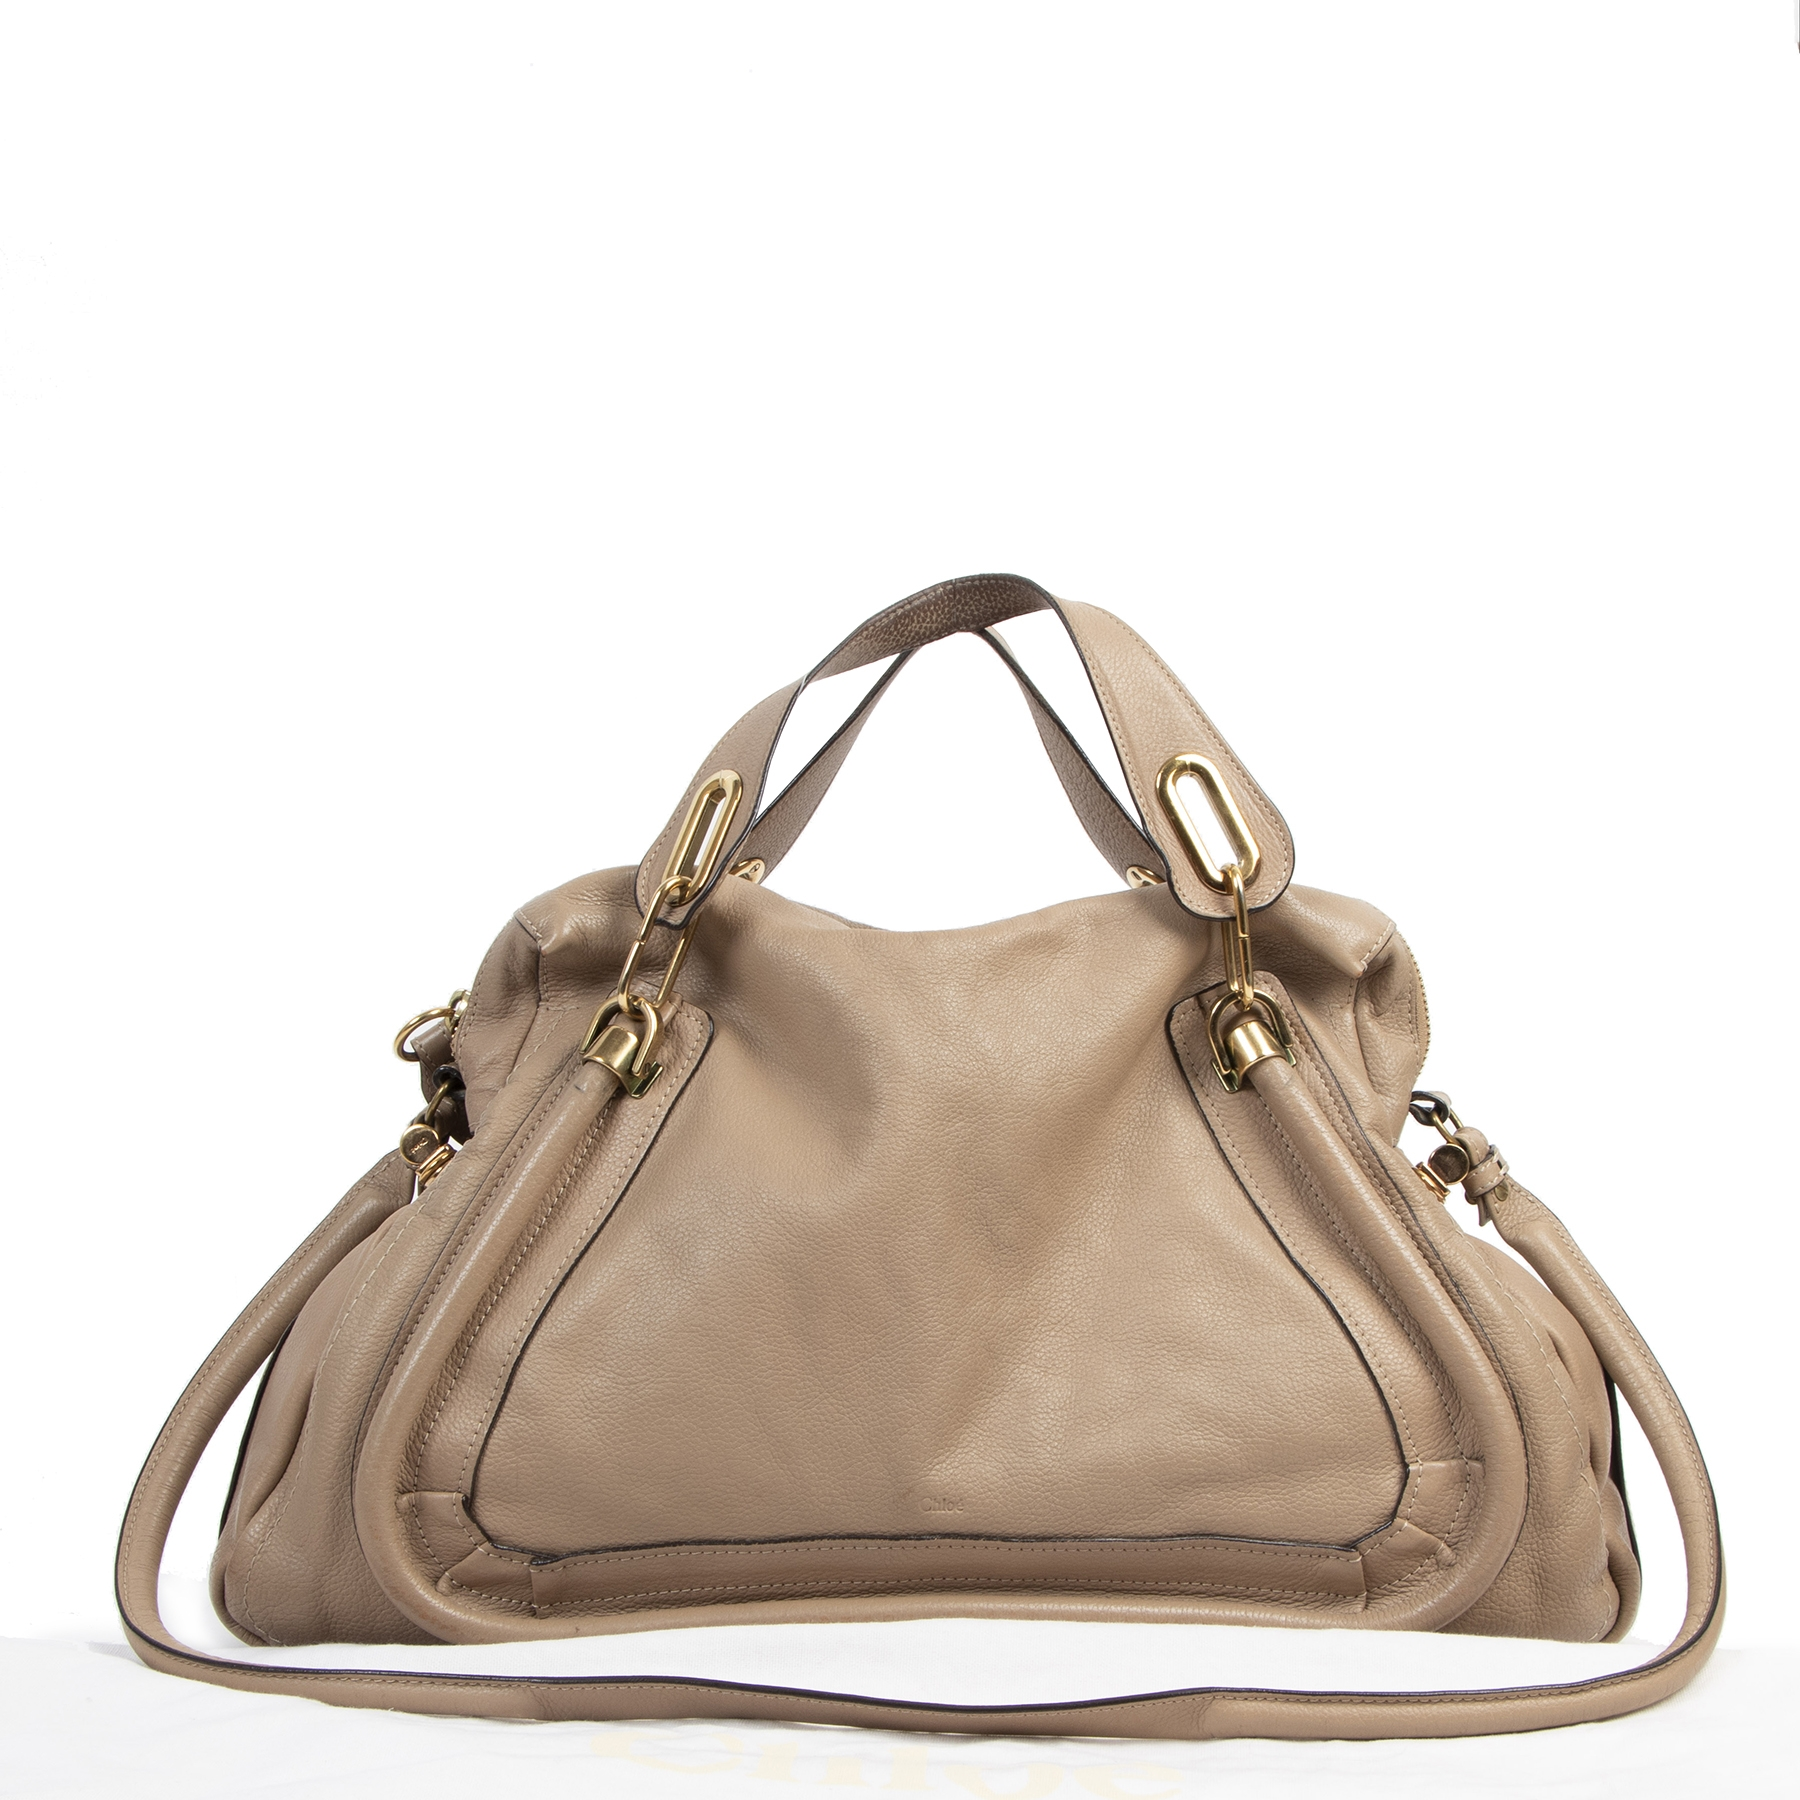 Are you looking for an authentic Chloé Taupe Leather Paraty Bag